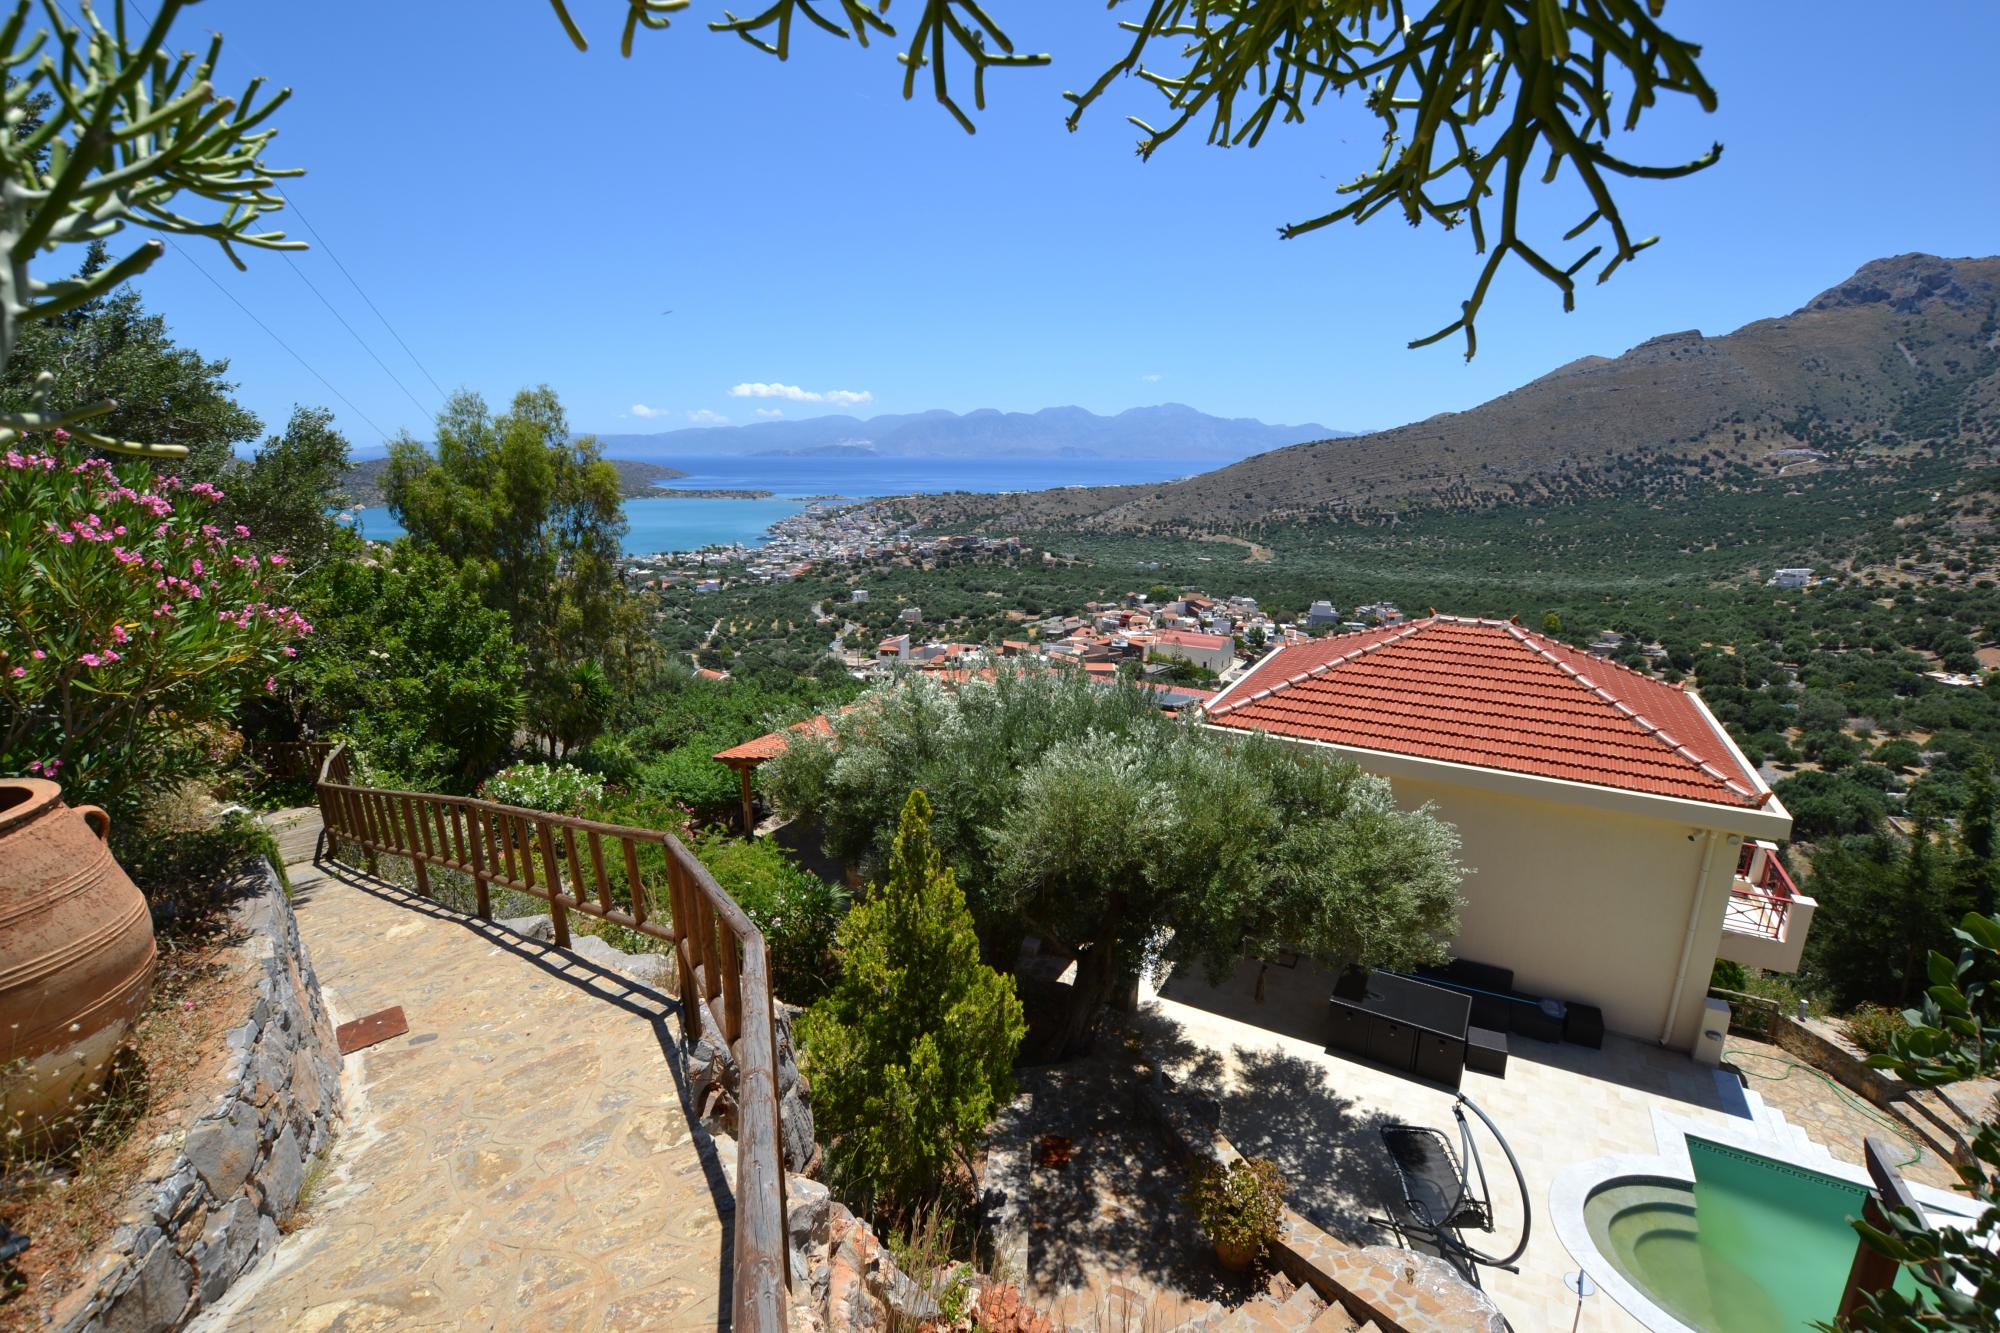 4 bedroom villa with spectacular views, pool and garden.